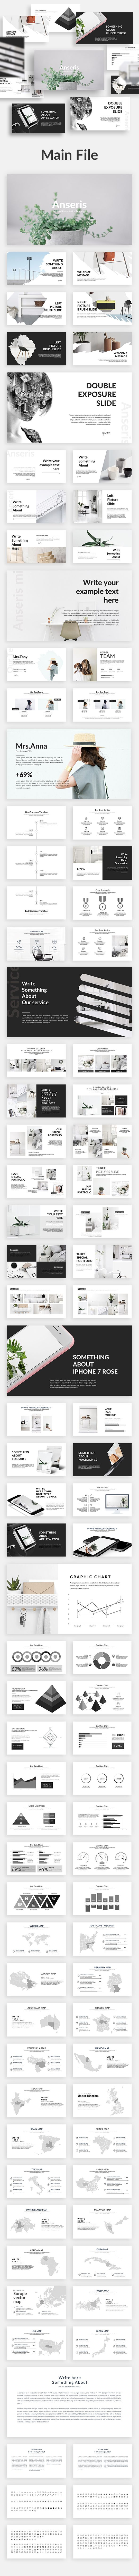 Anseris Minimal Powerpoint Template #free icons #industrial • Download ➝ https://graphicriver.net/item/anseris-minimal-powerpoint-template/19493819?ref=pxcr